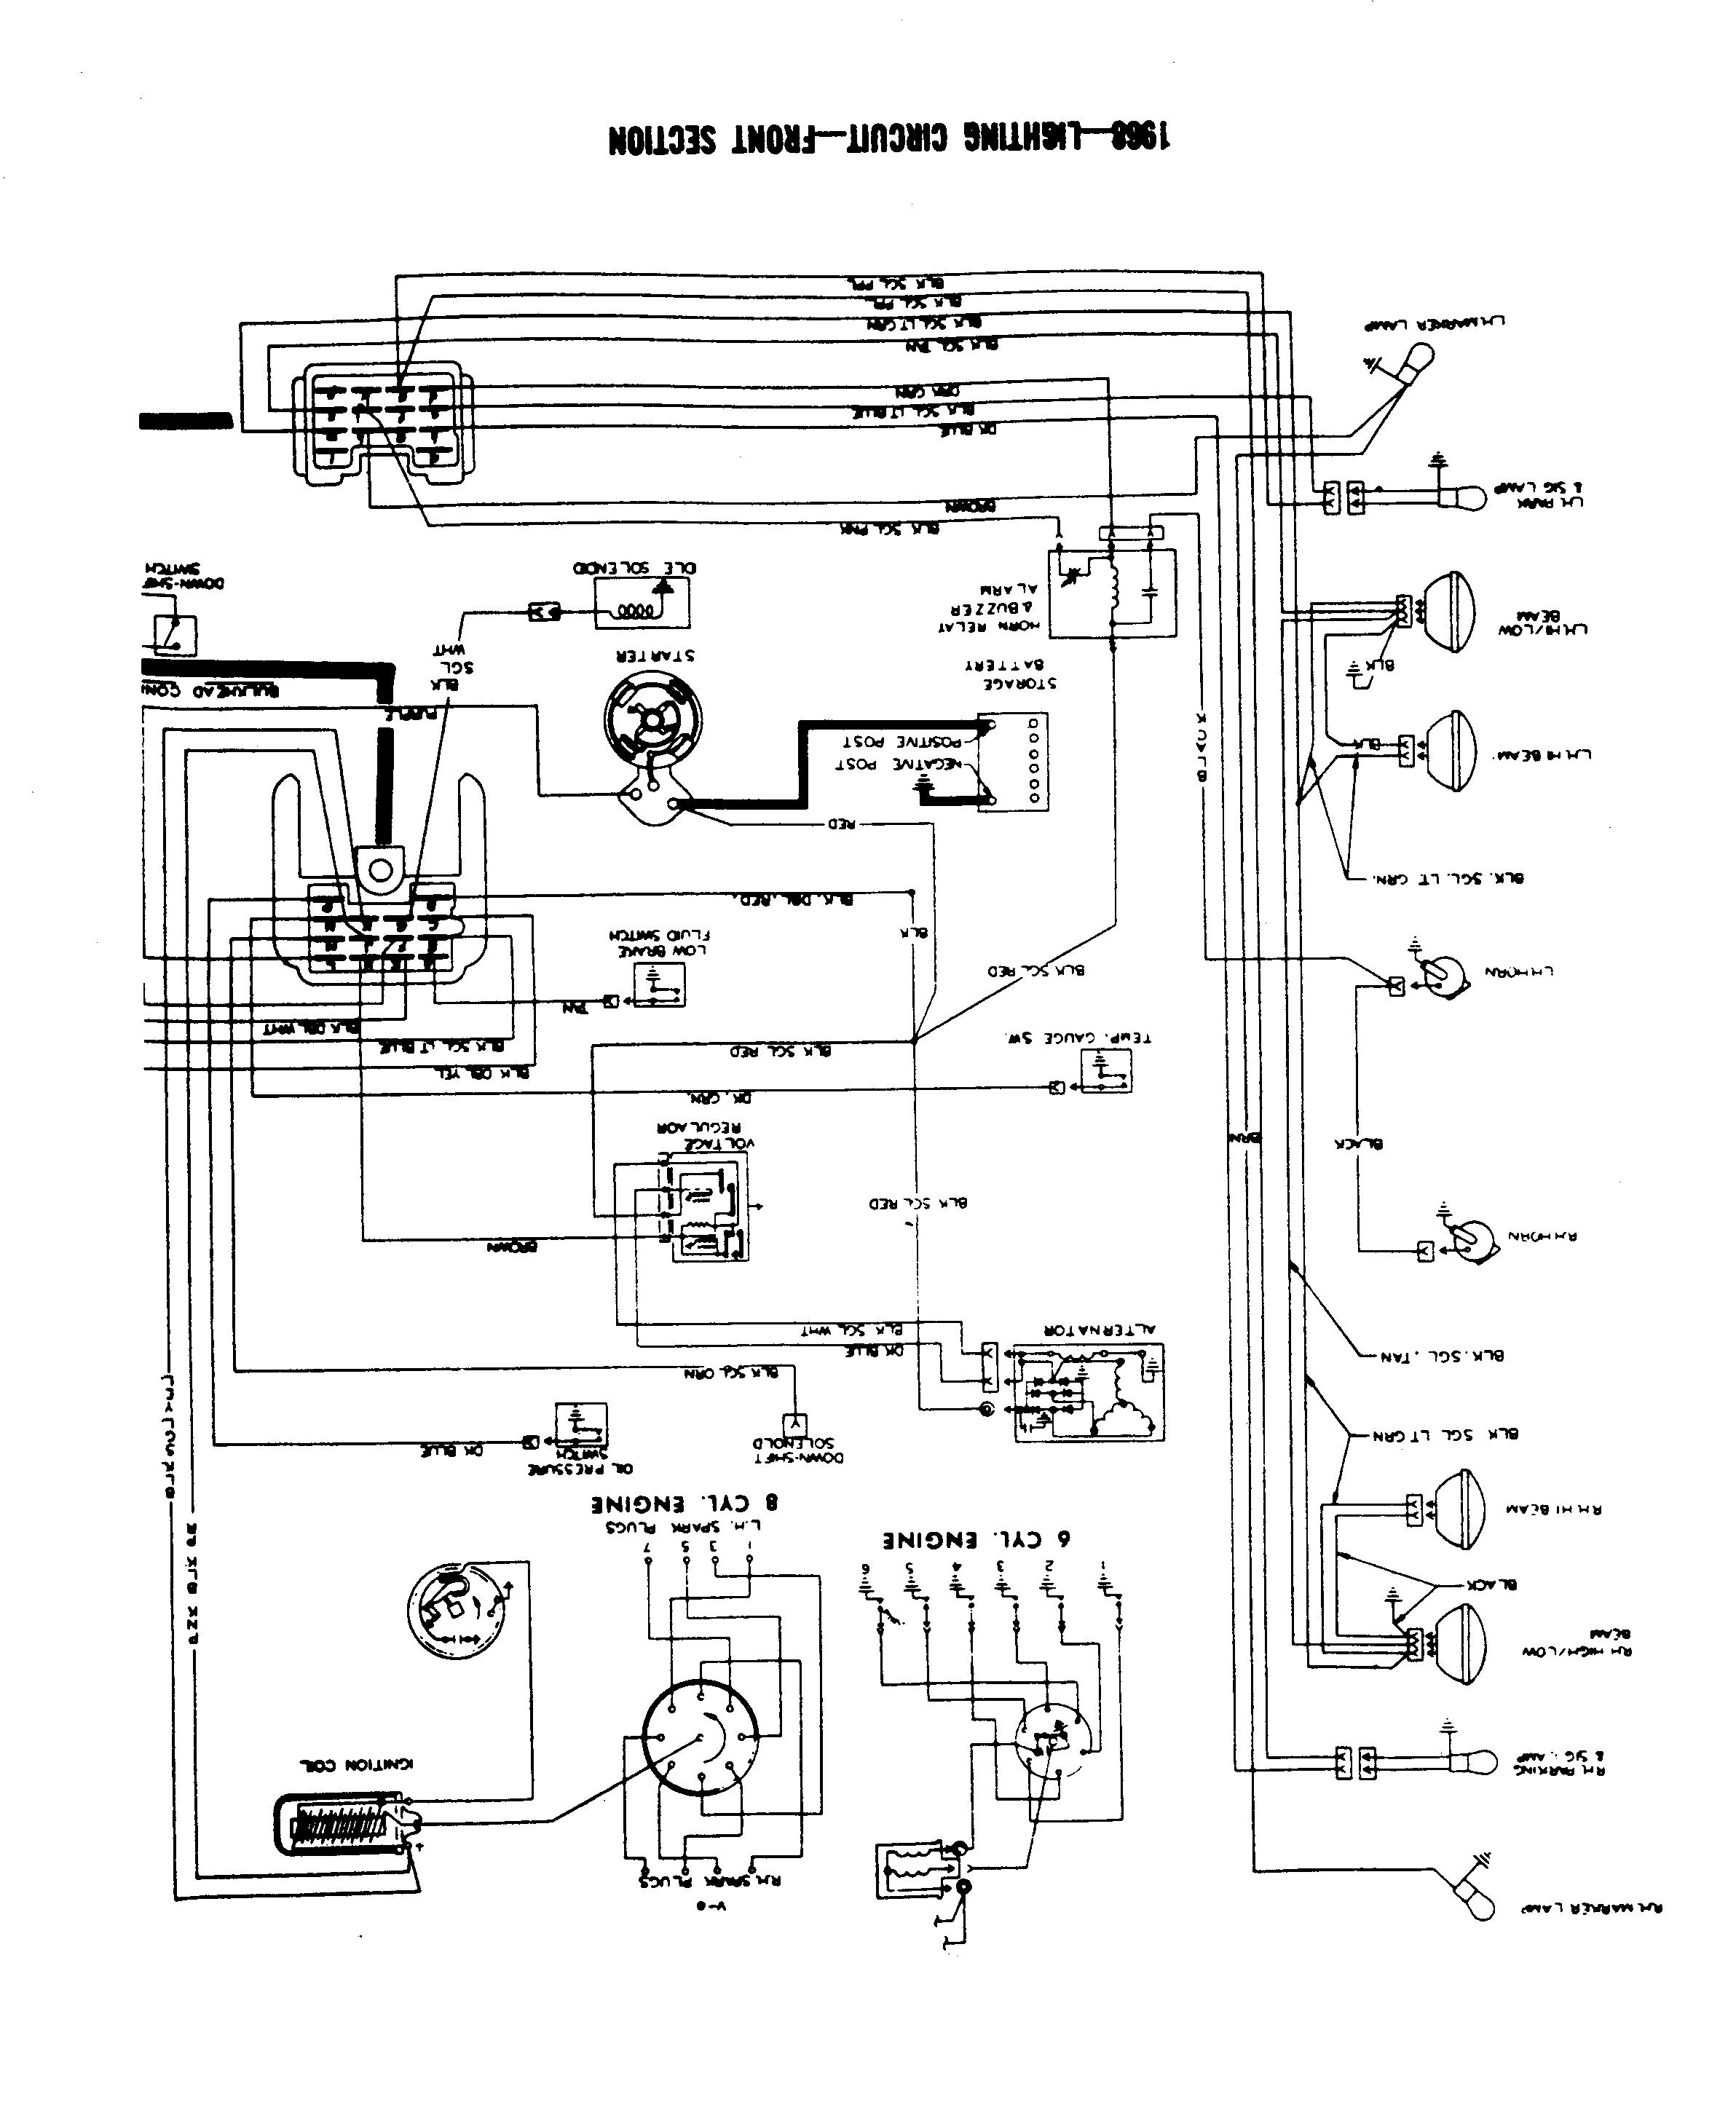 Wiring Diagram For 1966 Pontiac Gto - Wiring Diagram